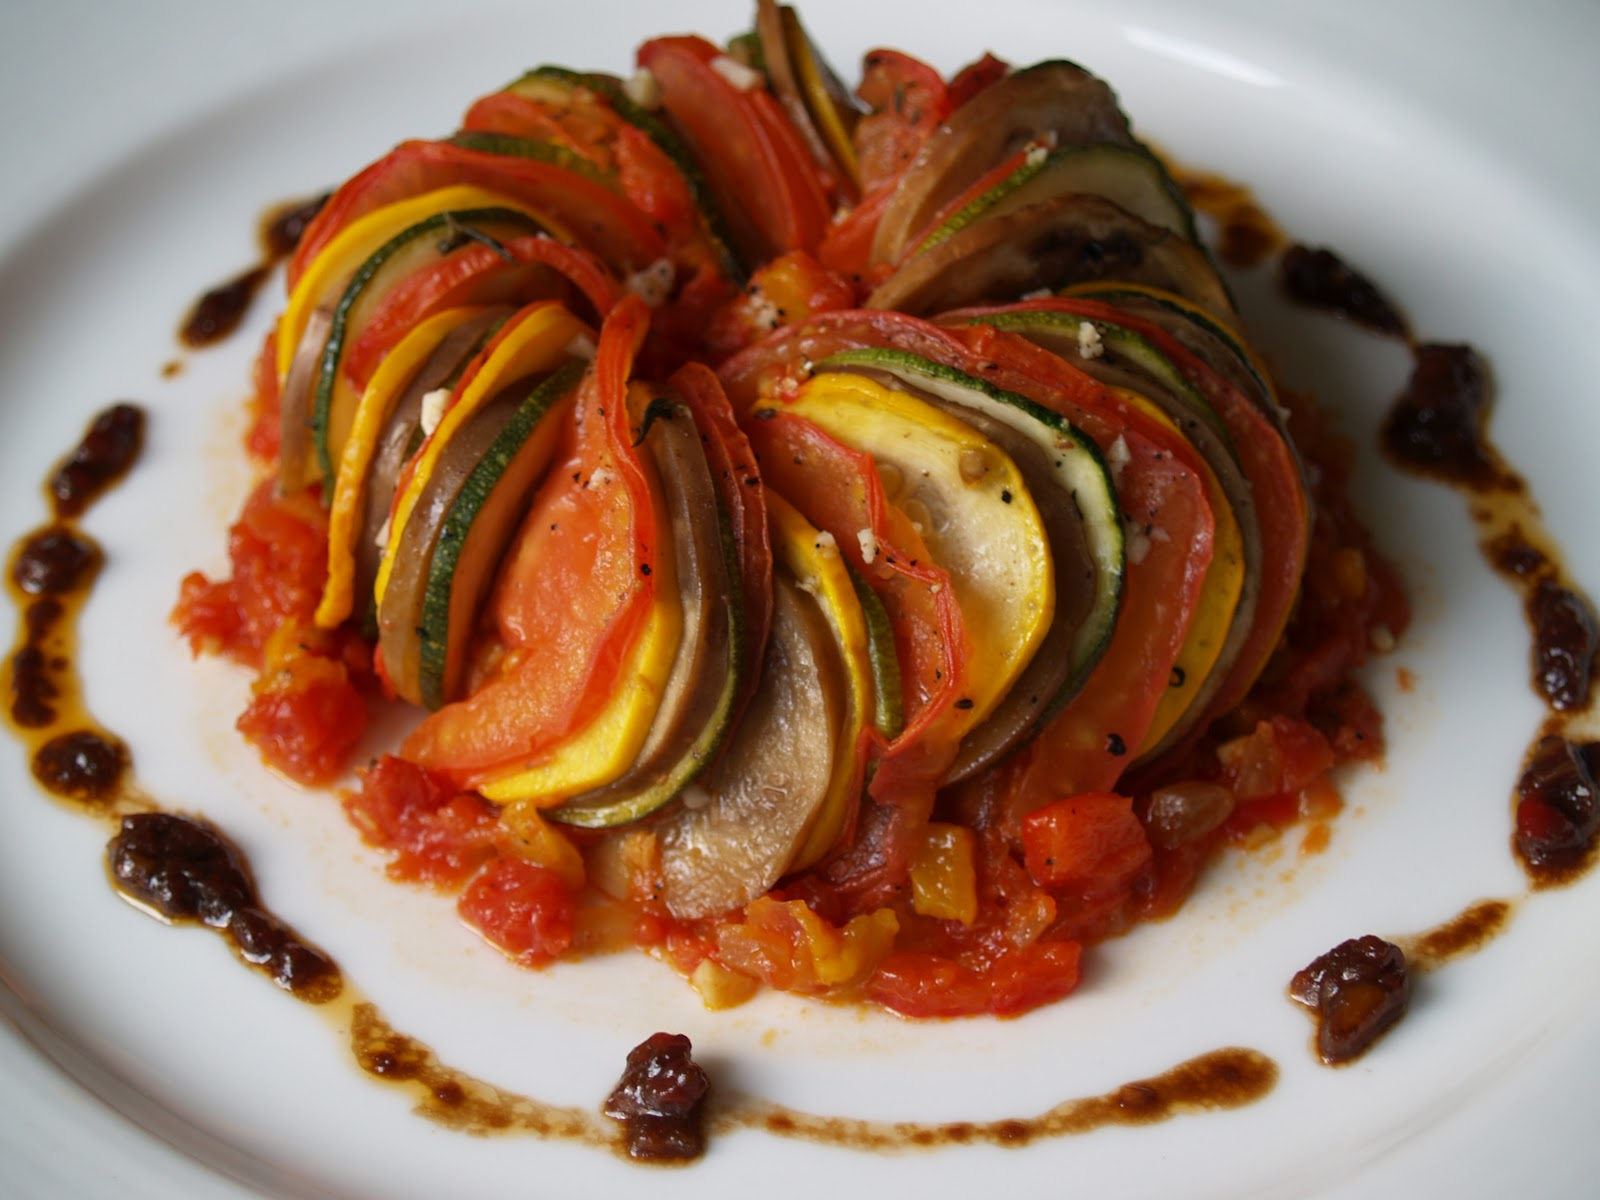 Persimmon and peach thomas keller 39 s ratatouille for Comida francesa nombres